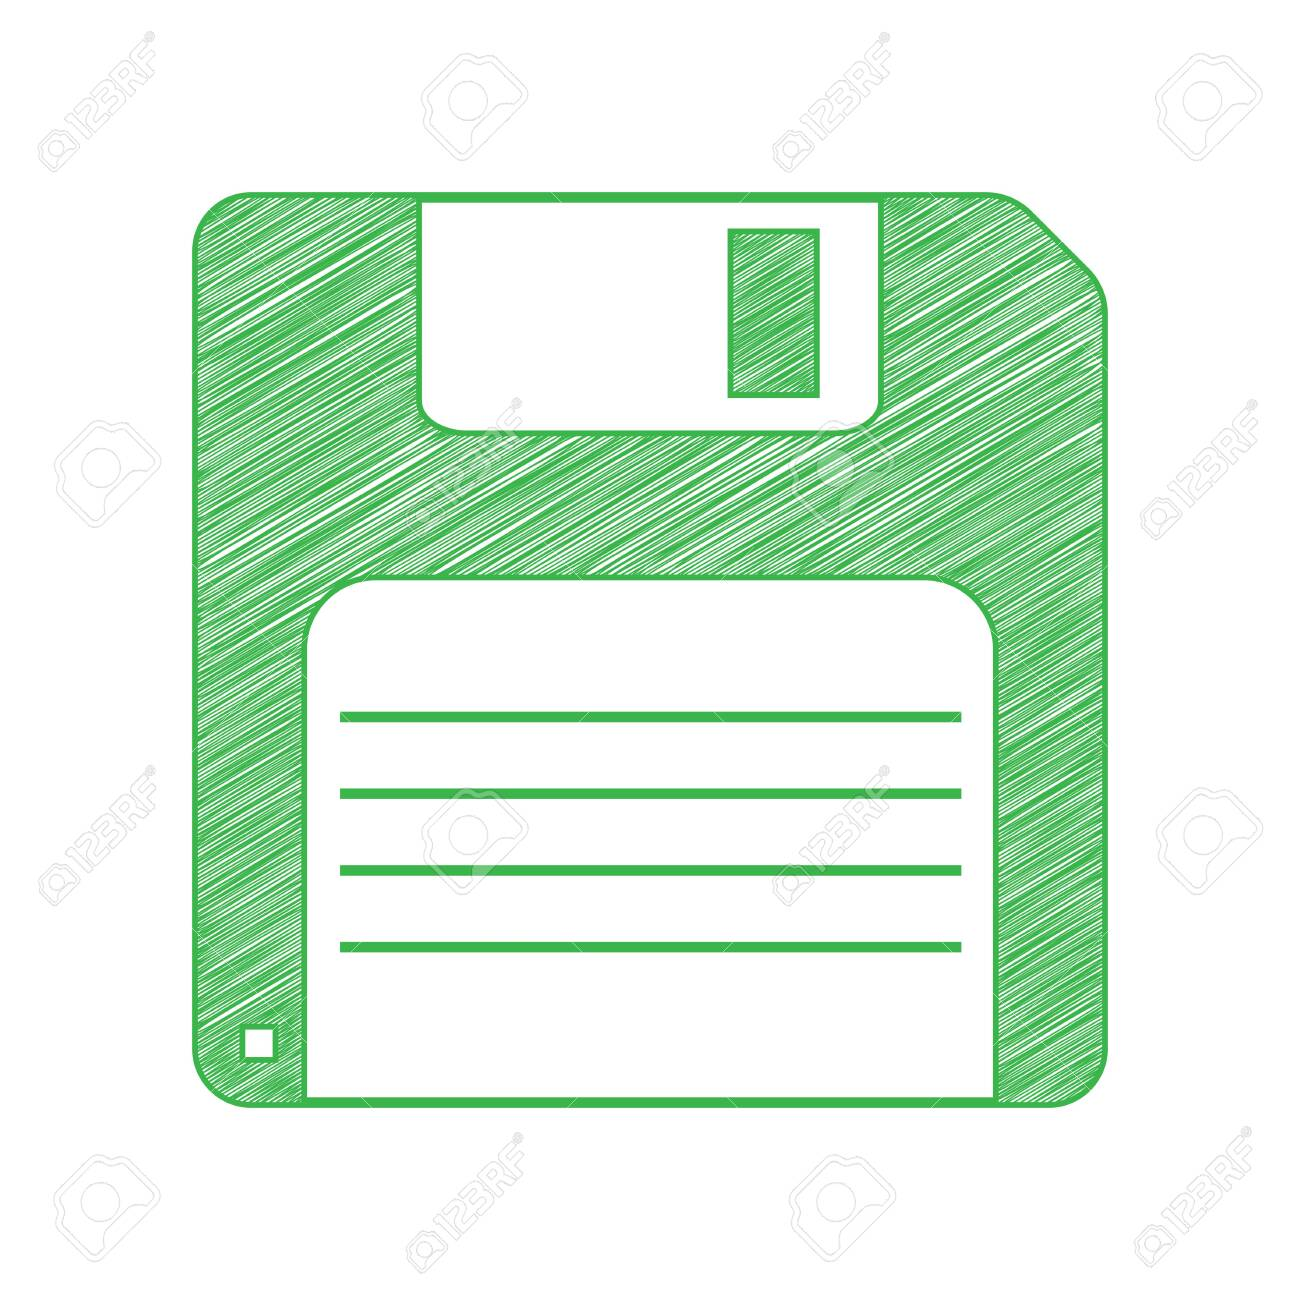 Floppy disk sign. Green scribble Icon with solid contour on white background. - 144915185